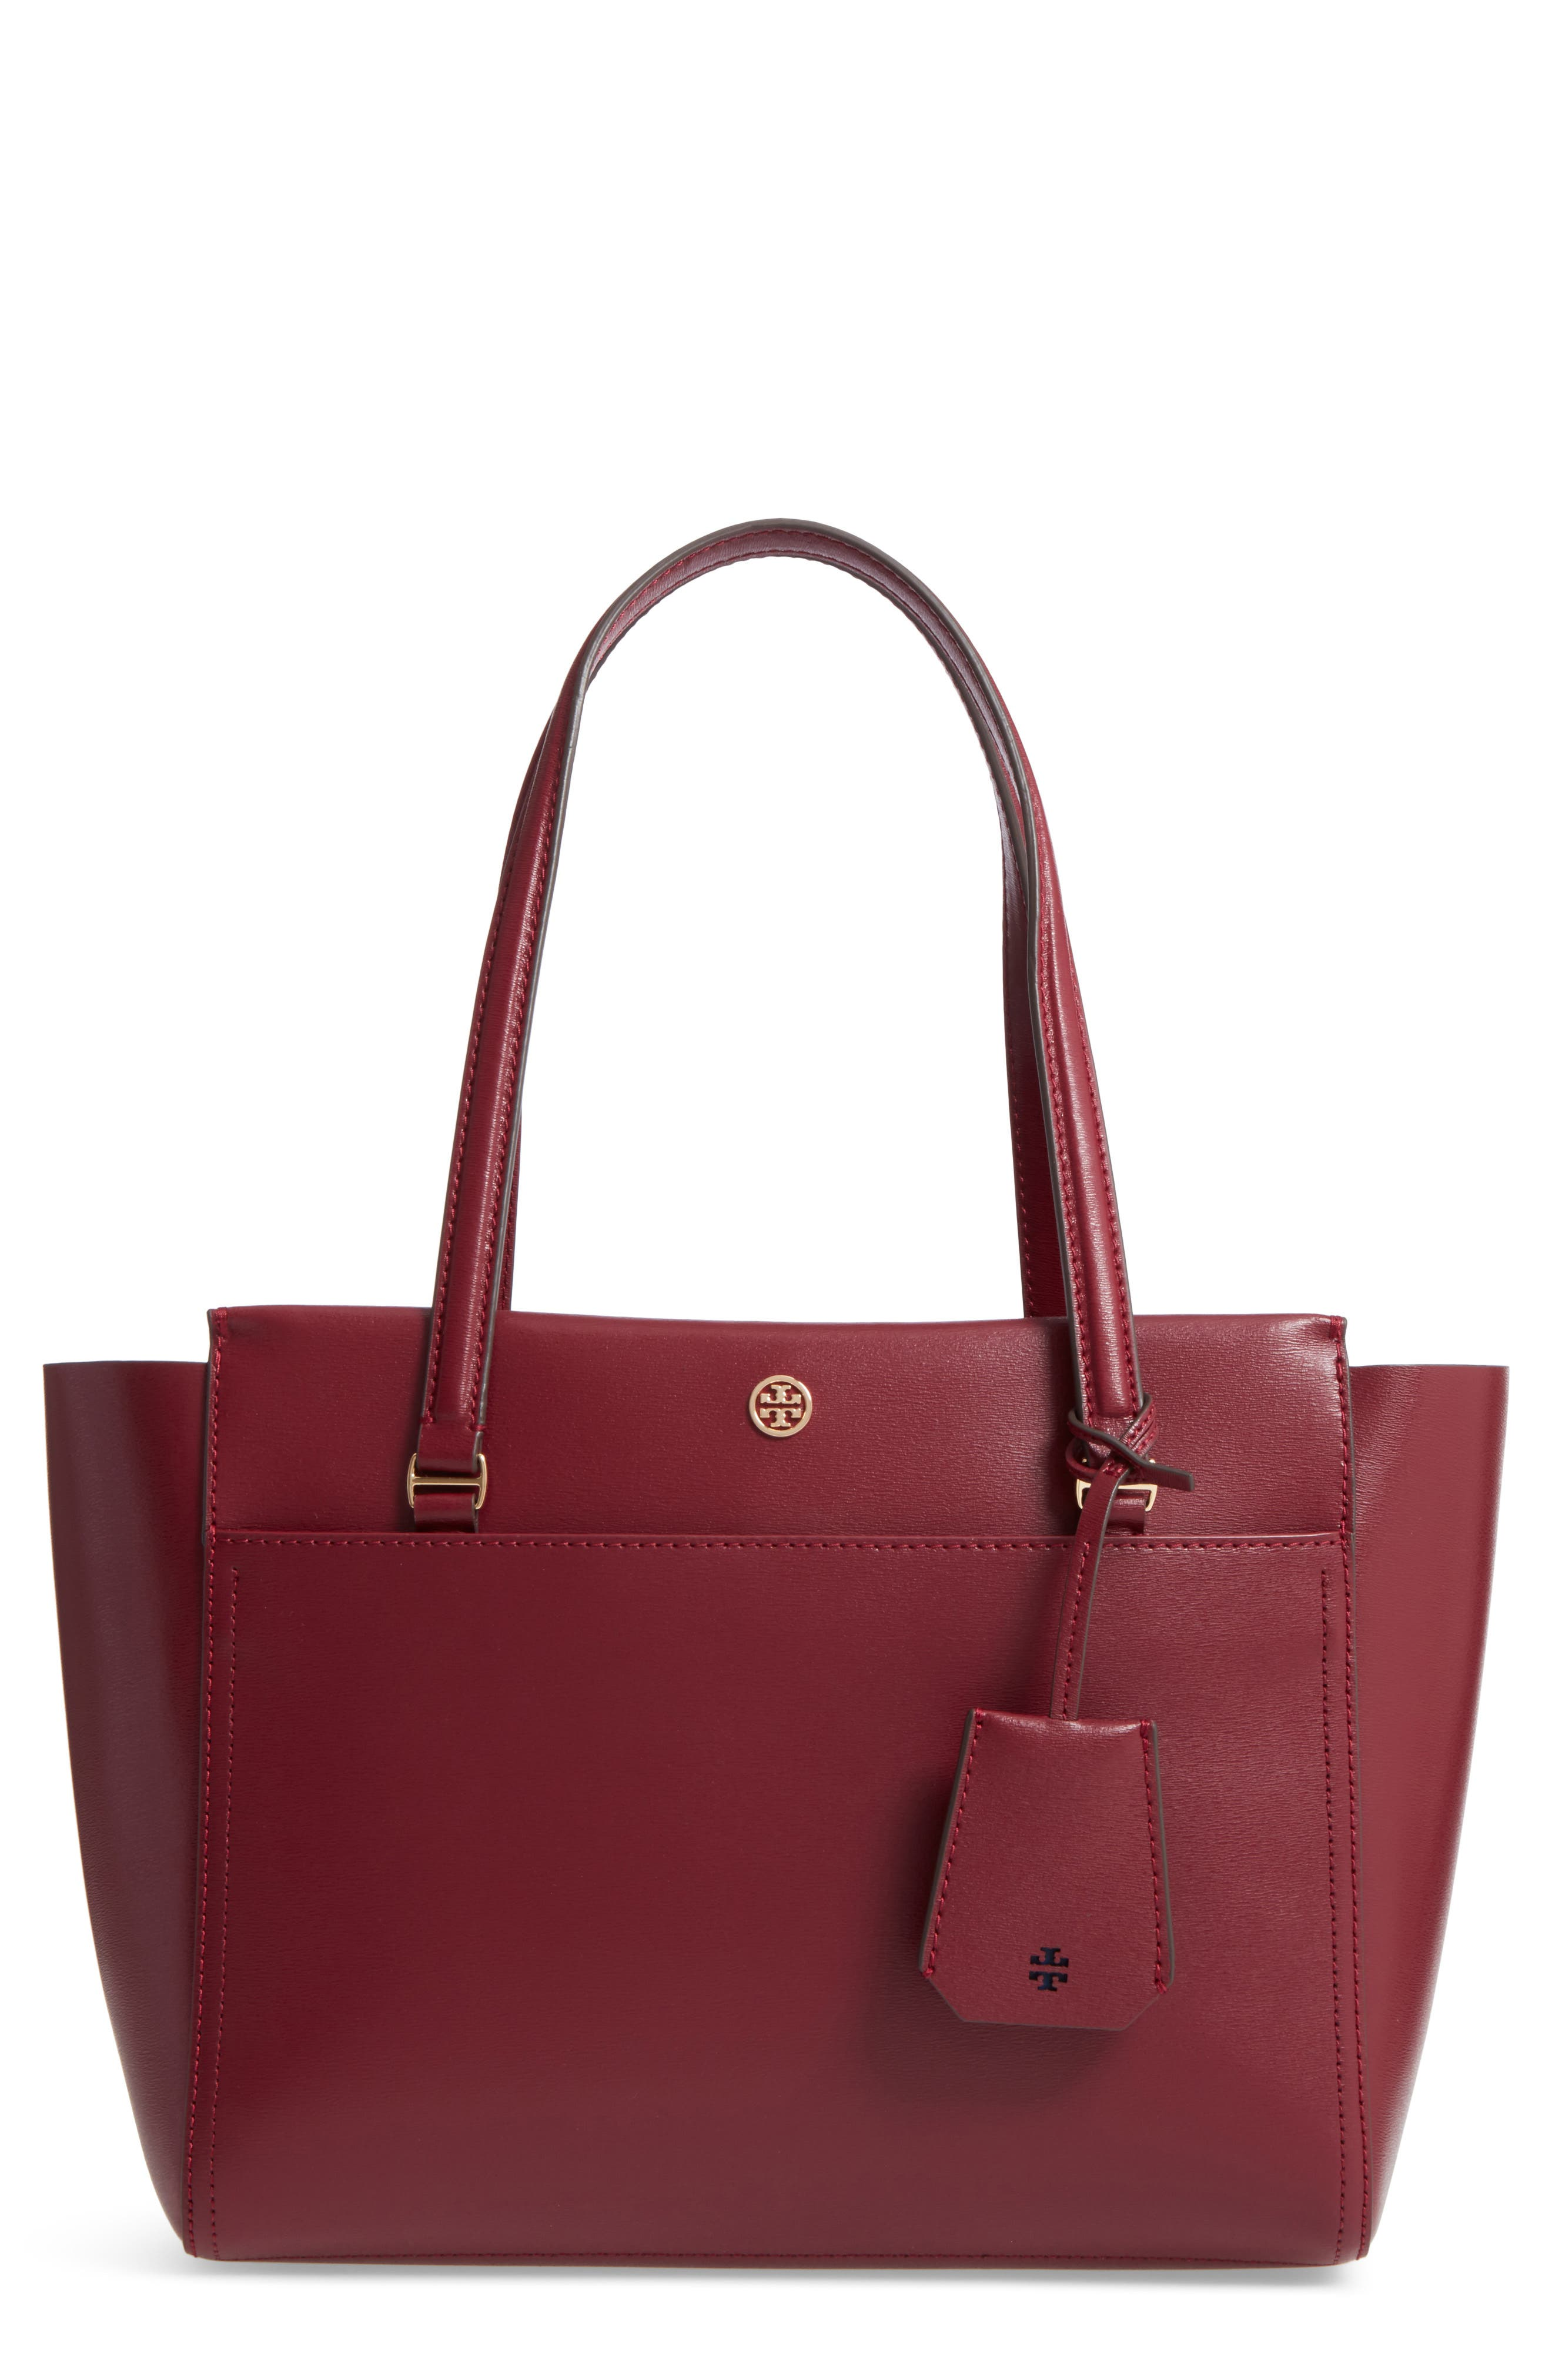 TORY BURCH Small Parker Leather Tote